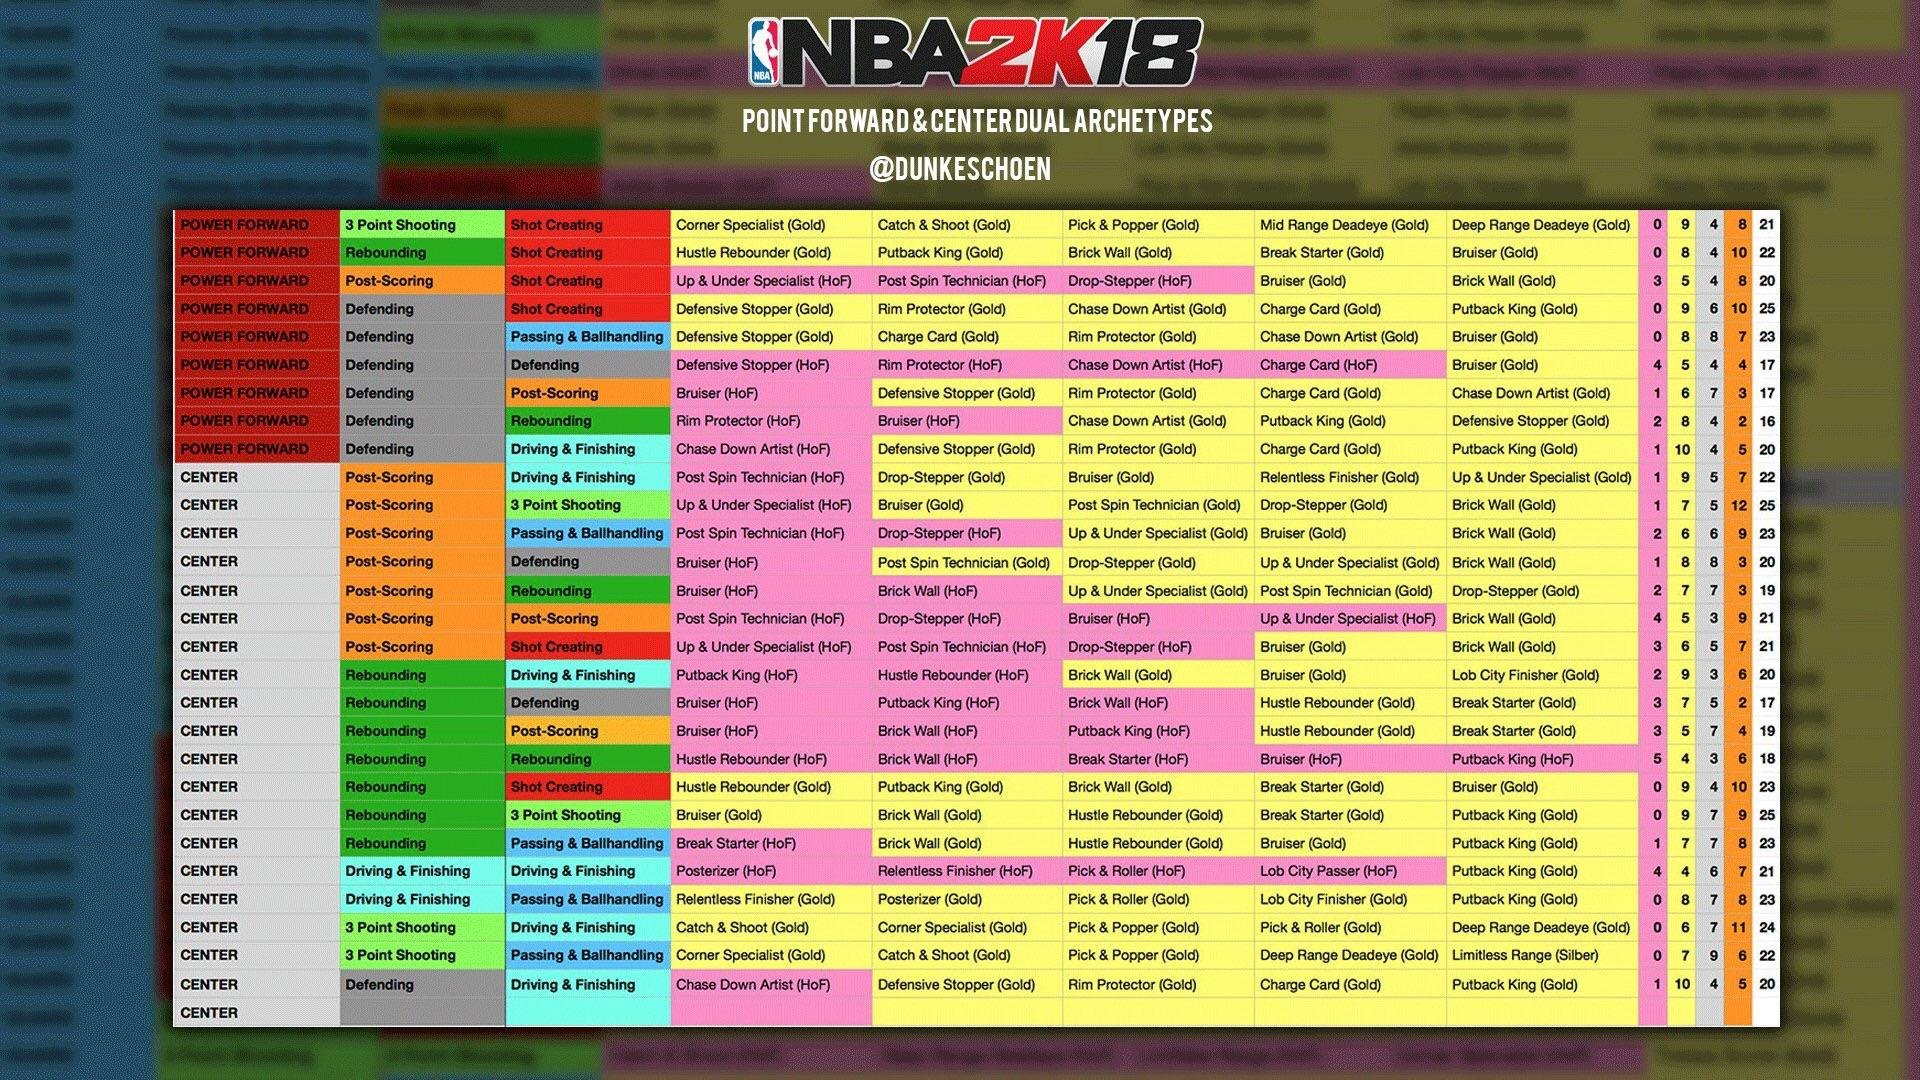 List Of Pf/c Archetypes (Dunkeschoen) : Nba2K Inside Nba 2K19 Badges Spreadsheet